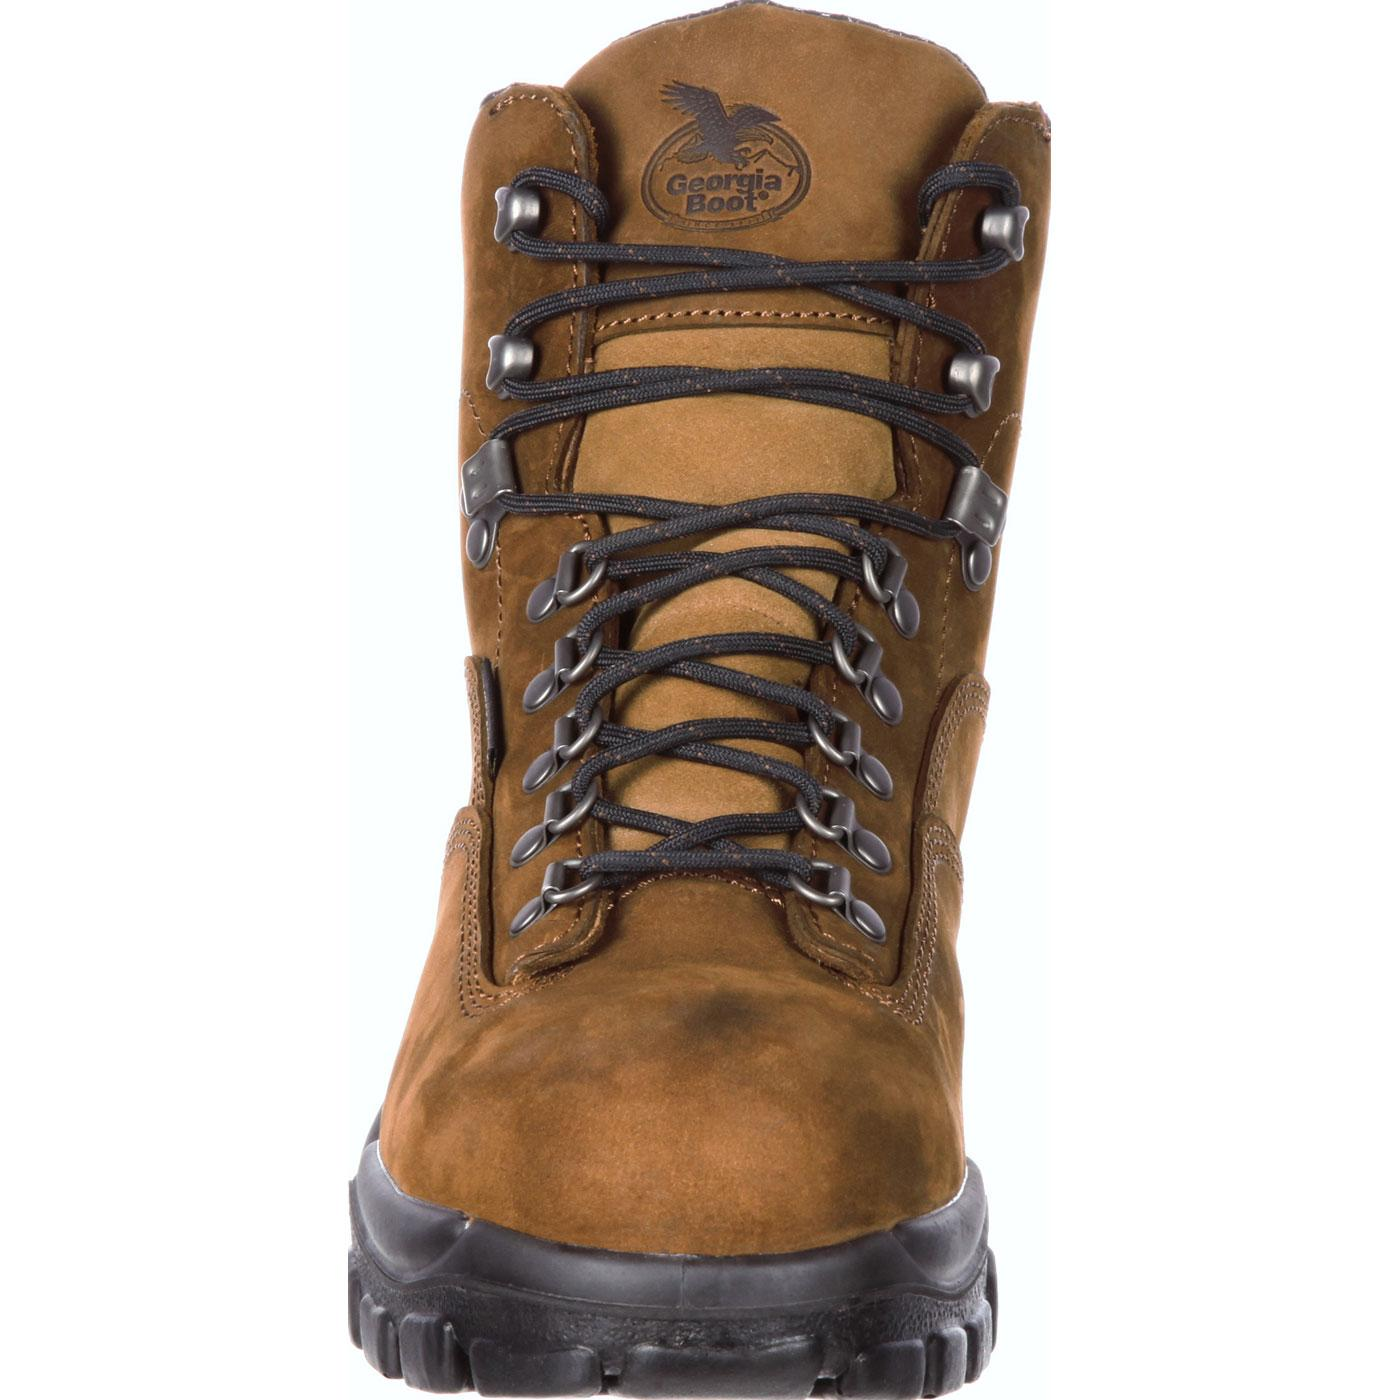 ea7f149798f Georgia Boot Suspension System Steel Toe Waterproof Work Hiker